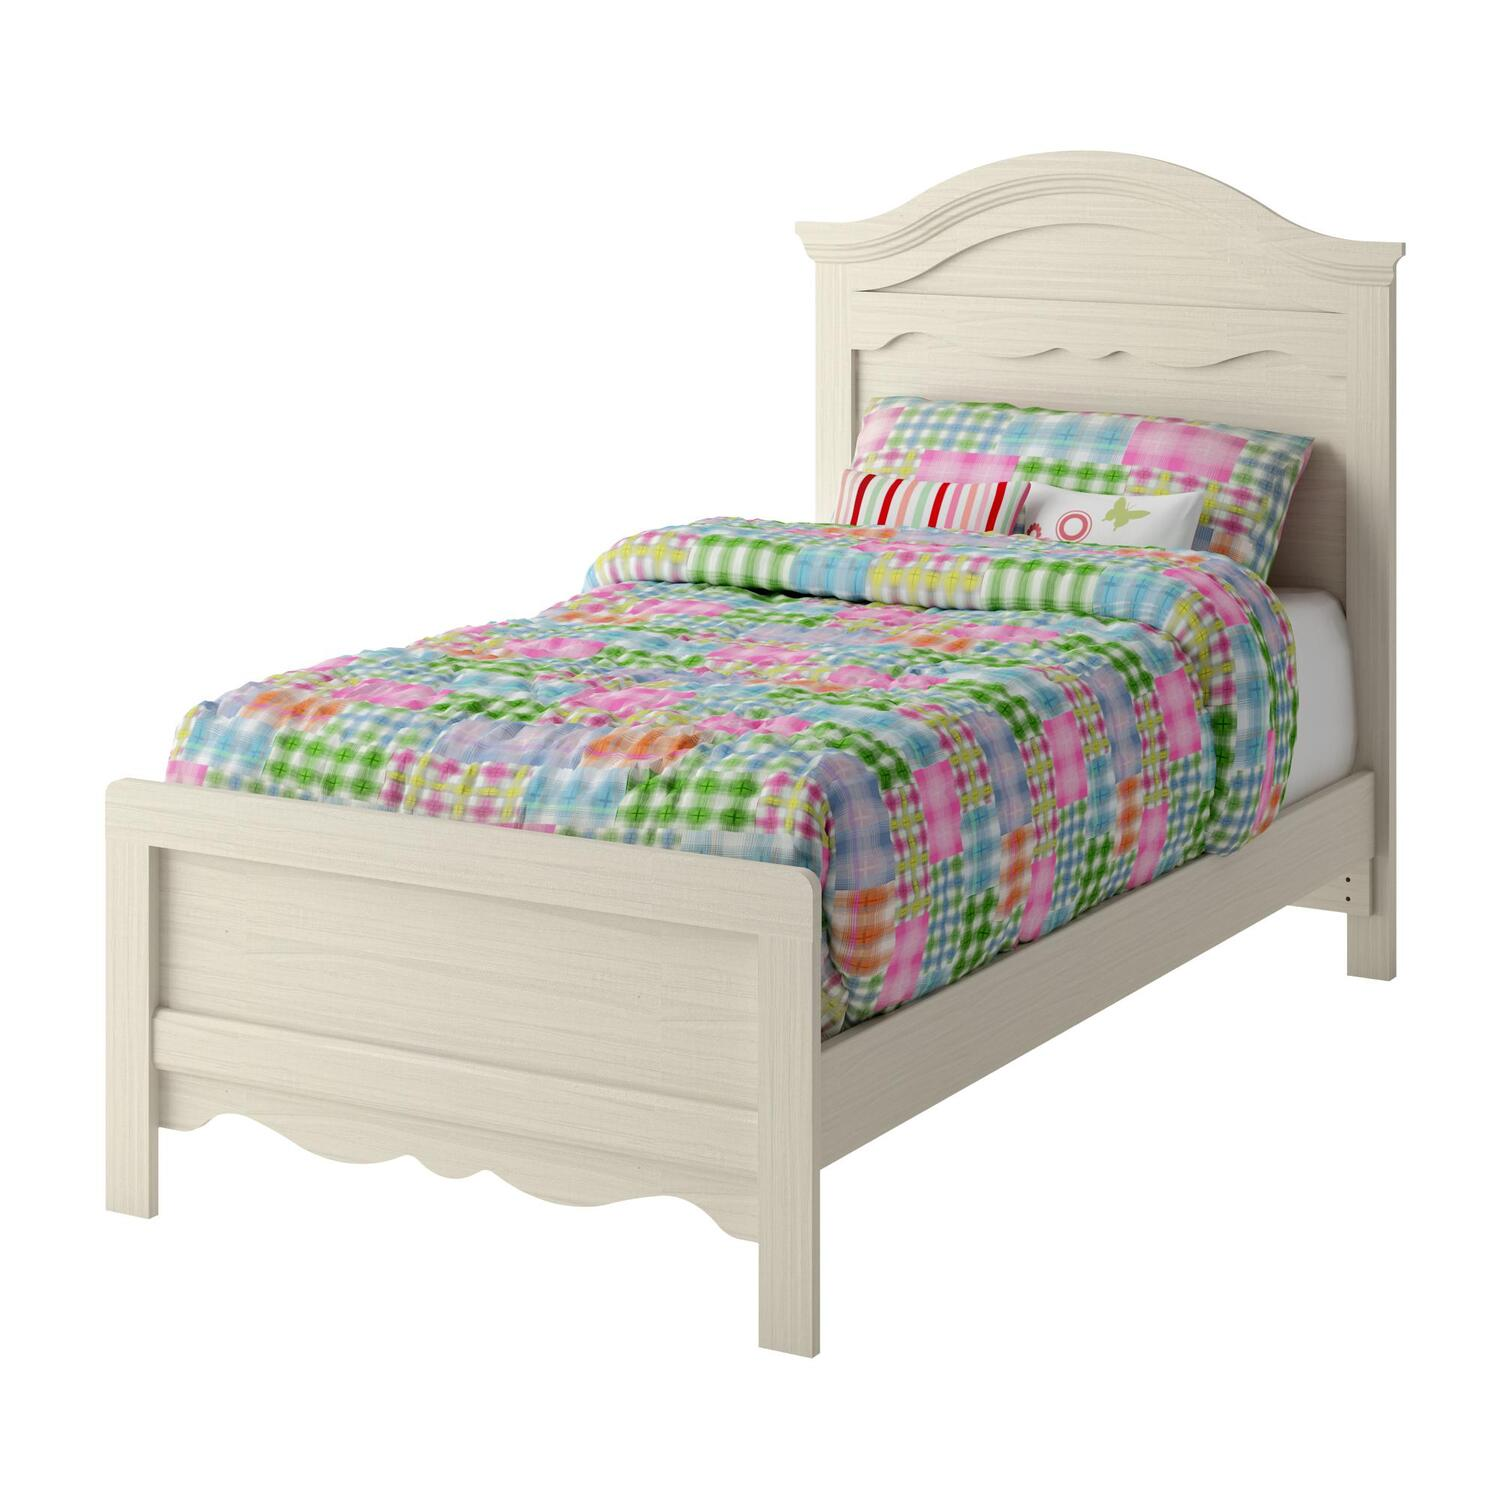 South Shore Summer Breeze Twin Bed By Oj Commerce 3210a3. Desk Com Support Center. Changing Table Topper. Plywood Corner Desk. Home Made Desk. Ethan Allen Student Desk. 24 Desk. Kidcraft Train Table. Pull Out Wall Desk